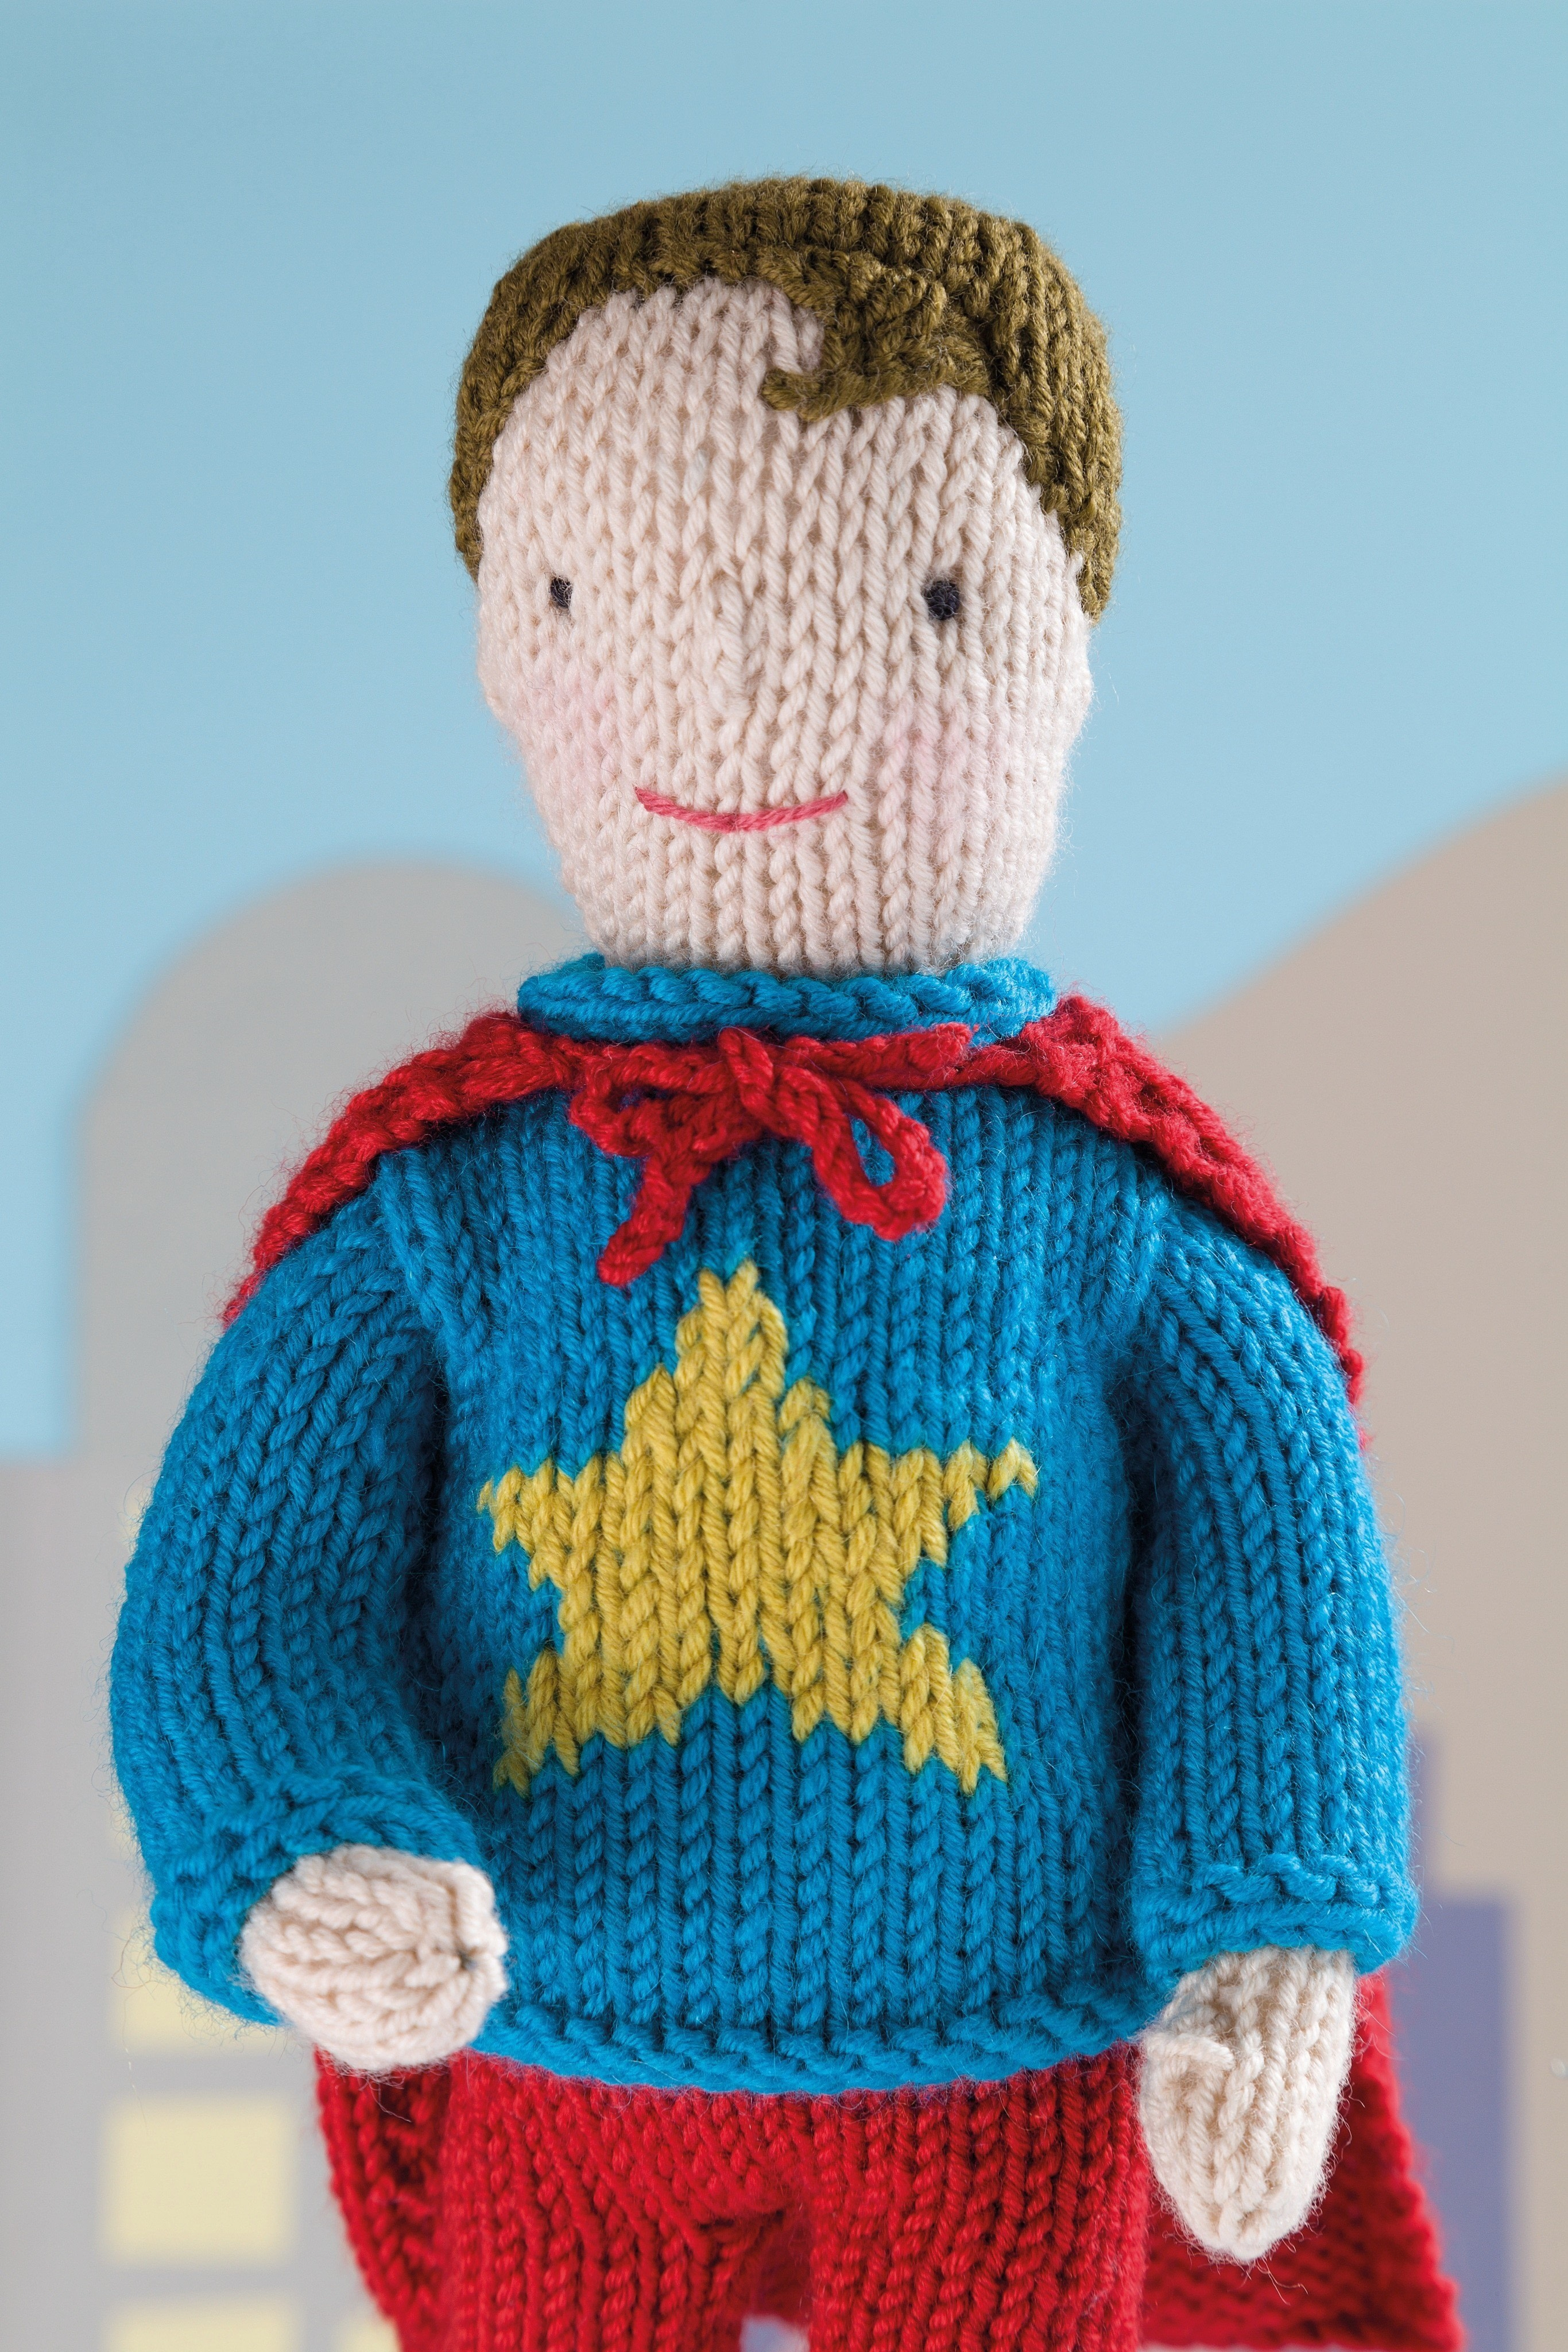 Superhero Stan Extract From Knit Your Own Dolls By Fiona Goble